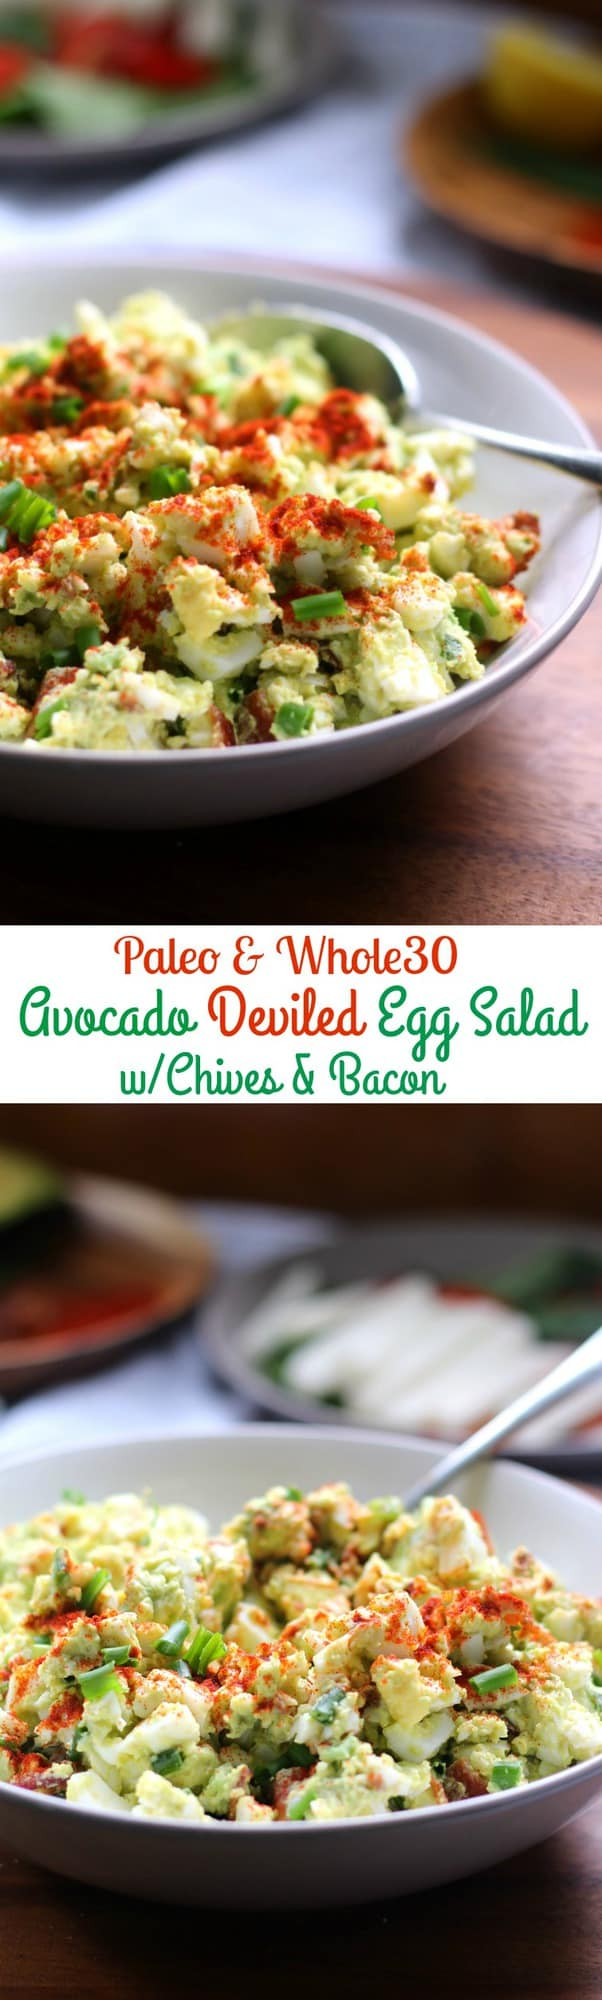 Deviled Avocado Egg Salad with Chives and Bacon - No Mayo! Creamy and healthy egg salad with bacon and chives